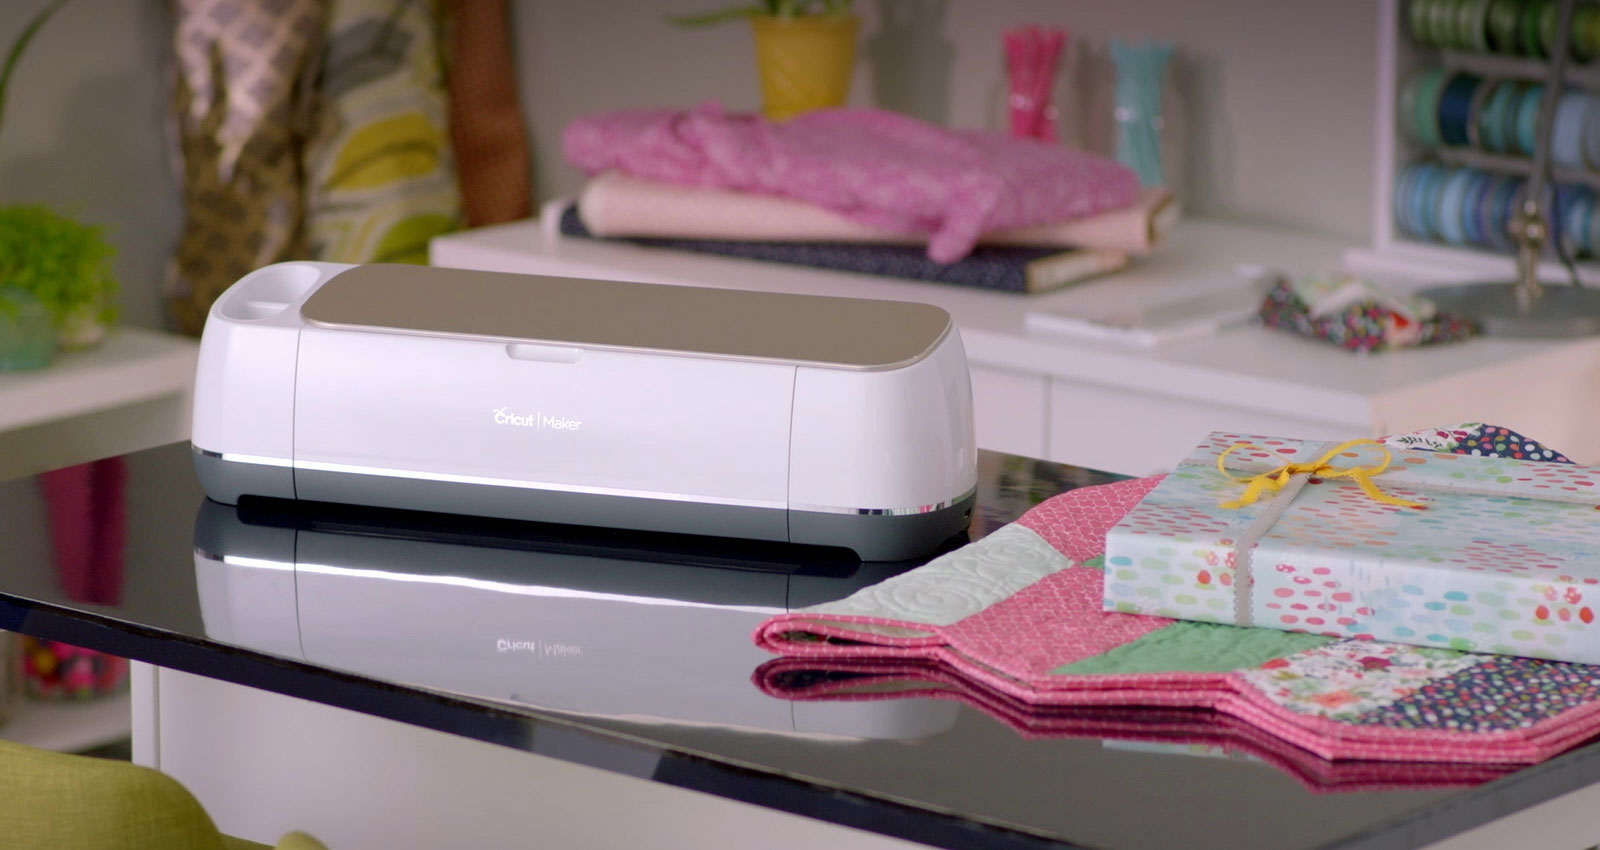 Cricut Maker with Quilt